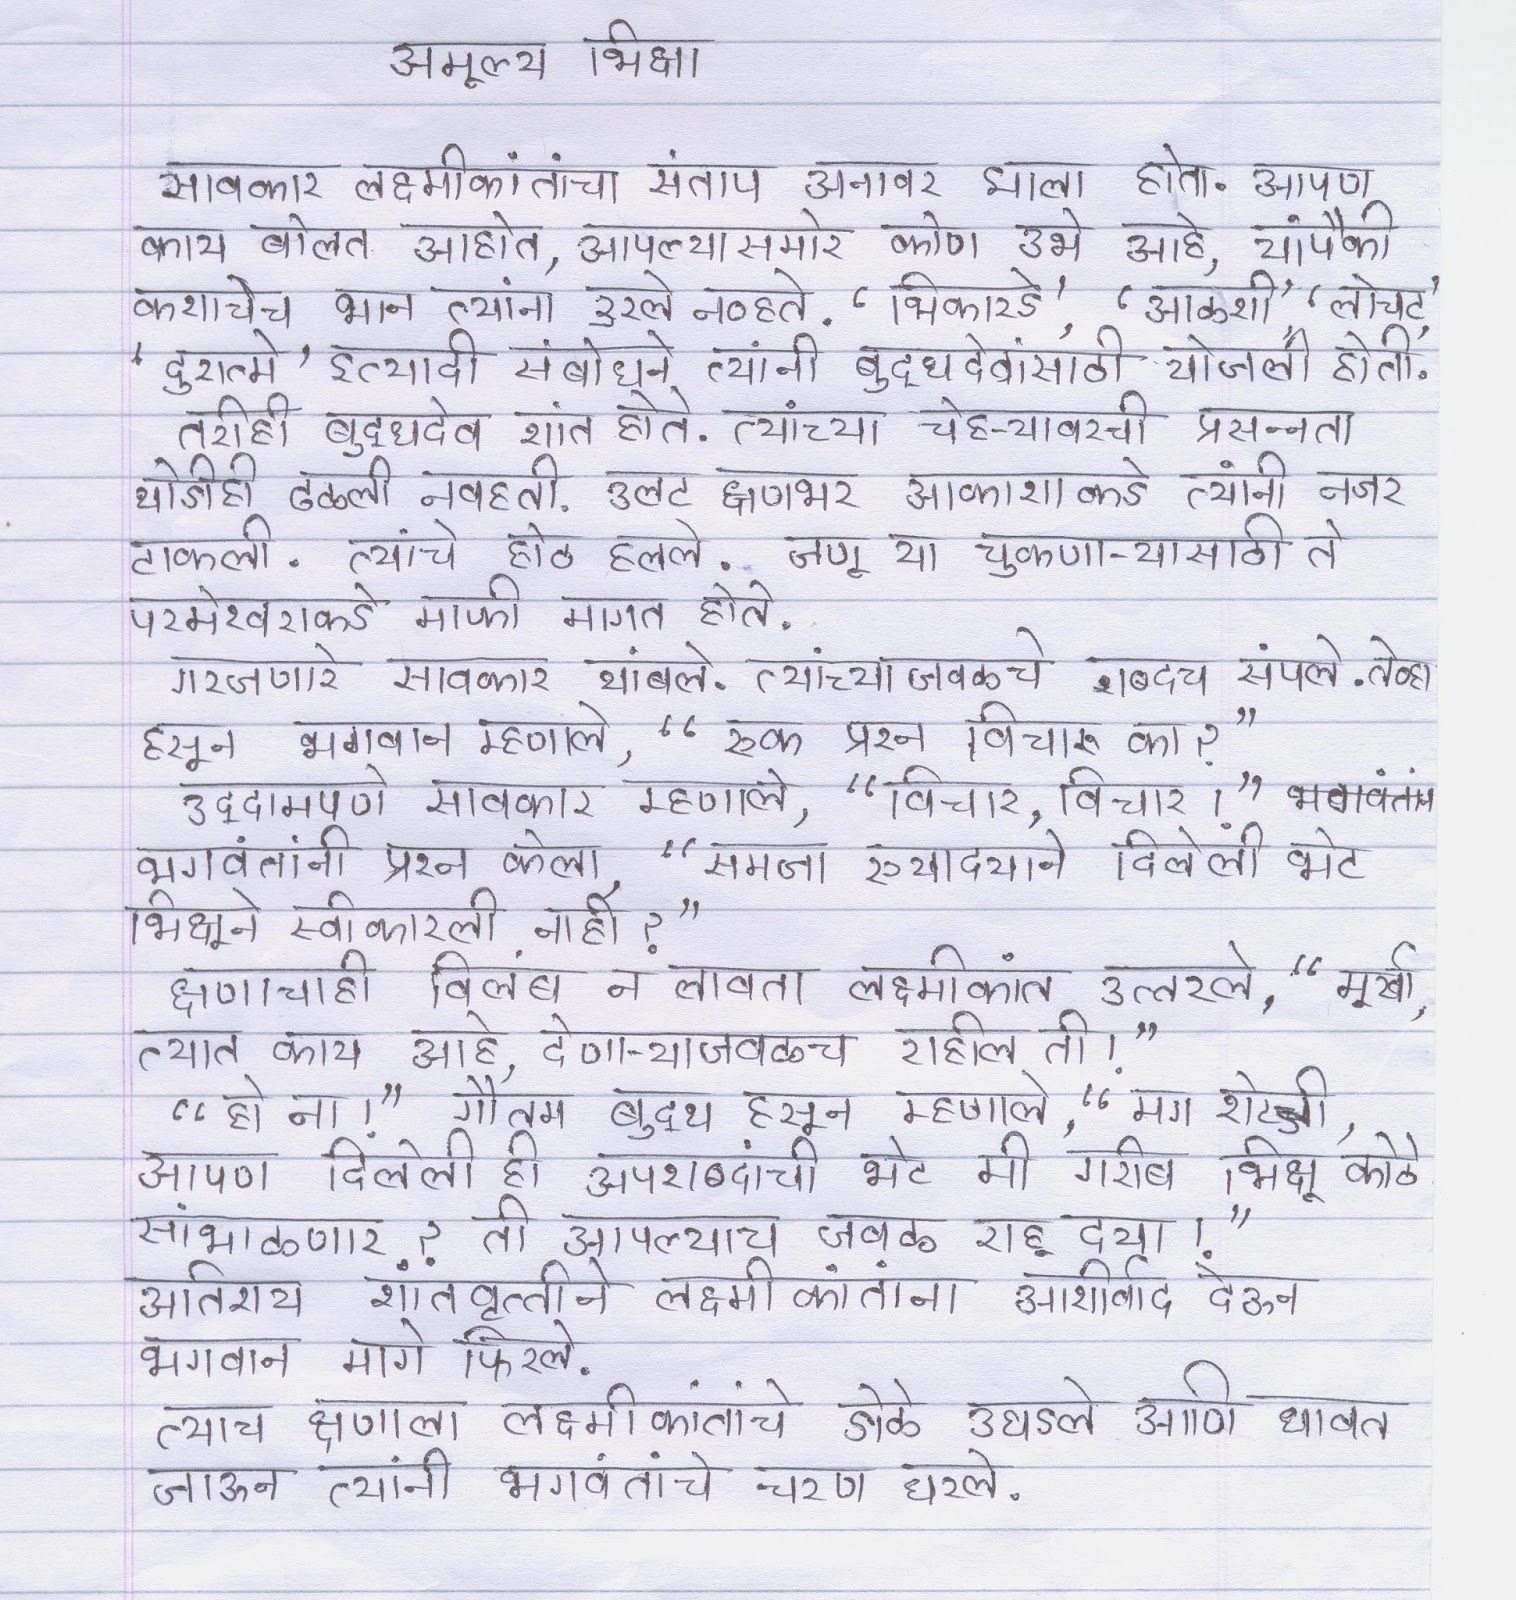 Essay on cow in marathi for kids